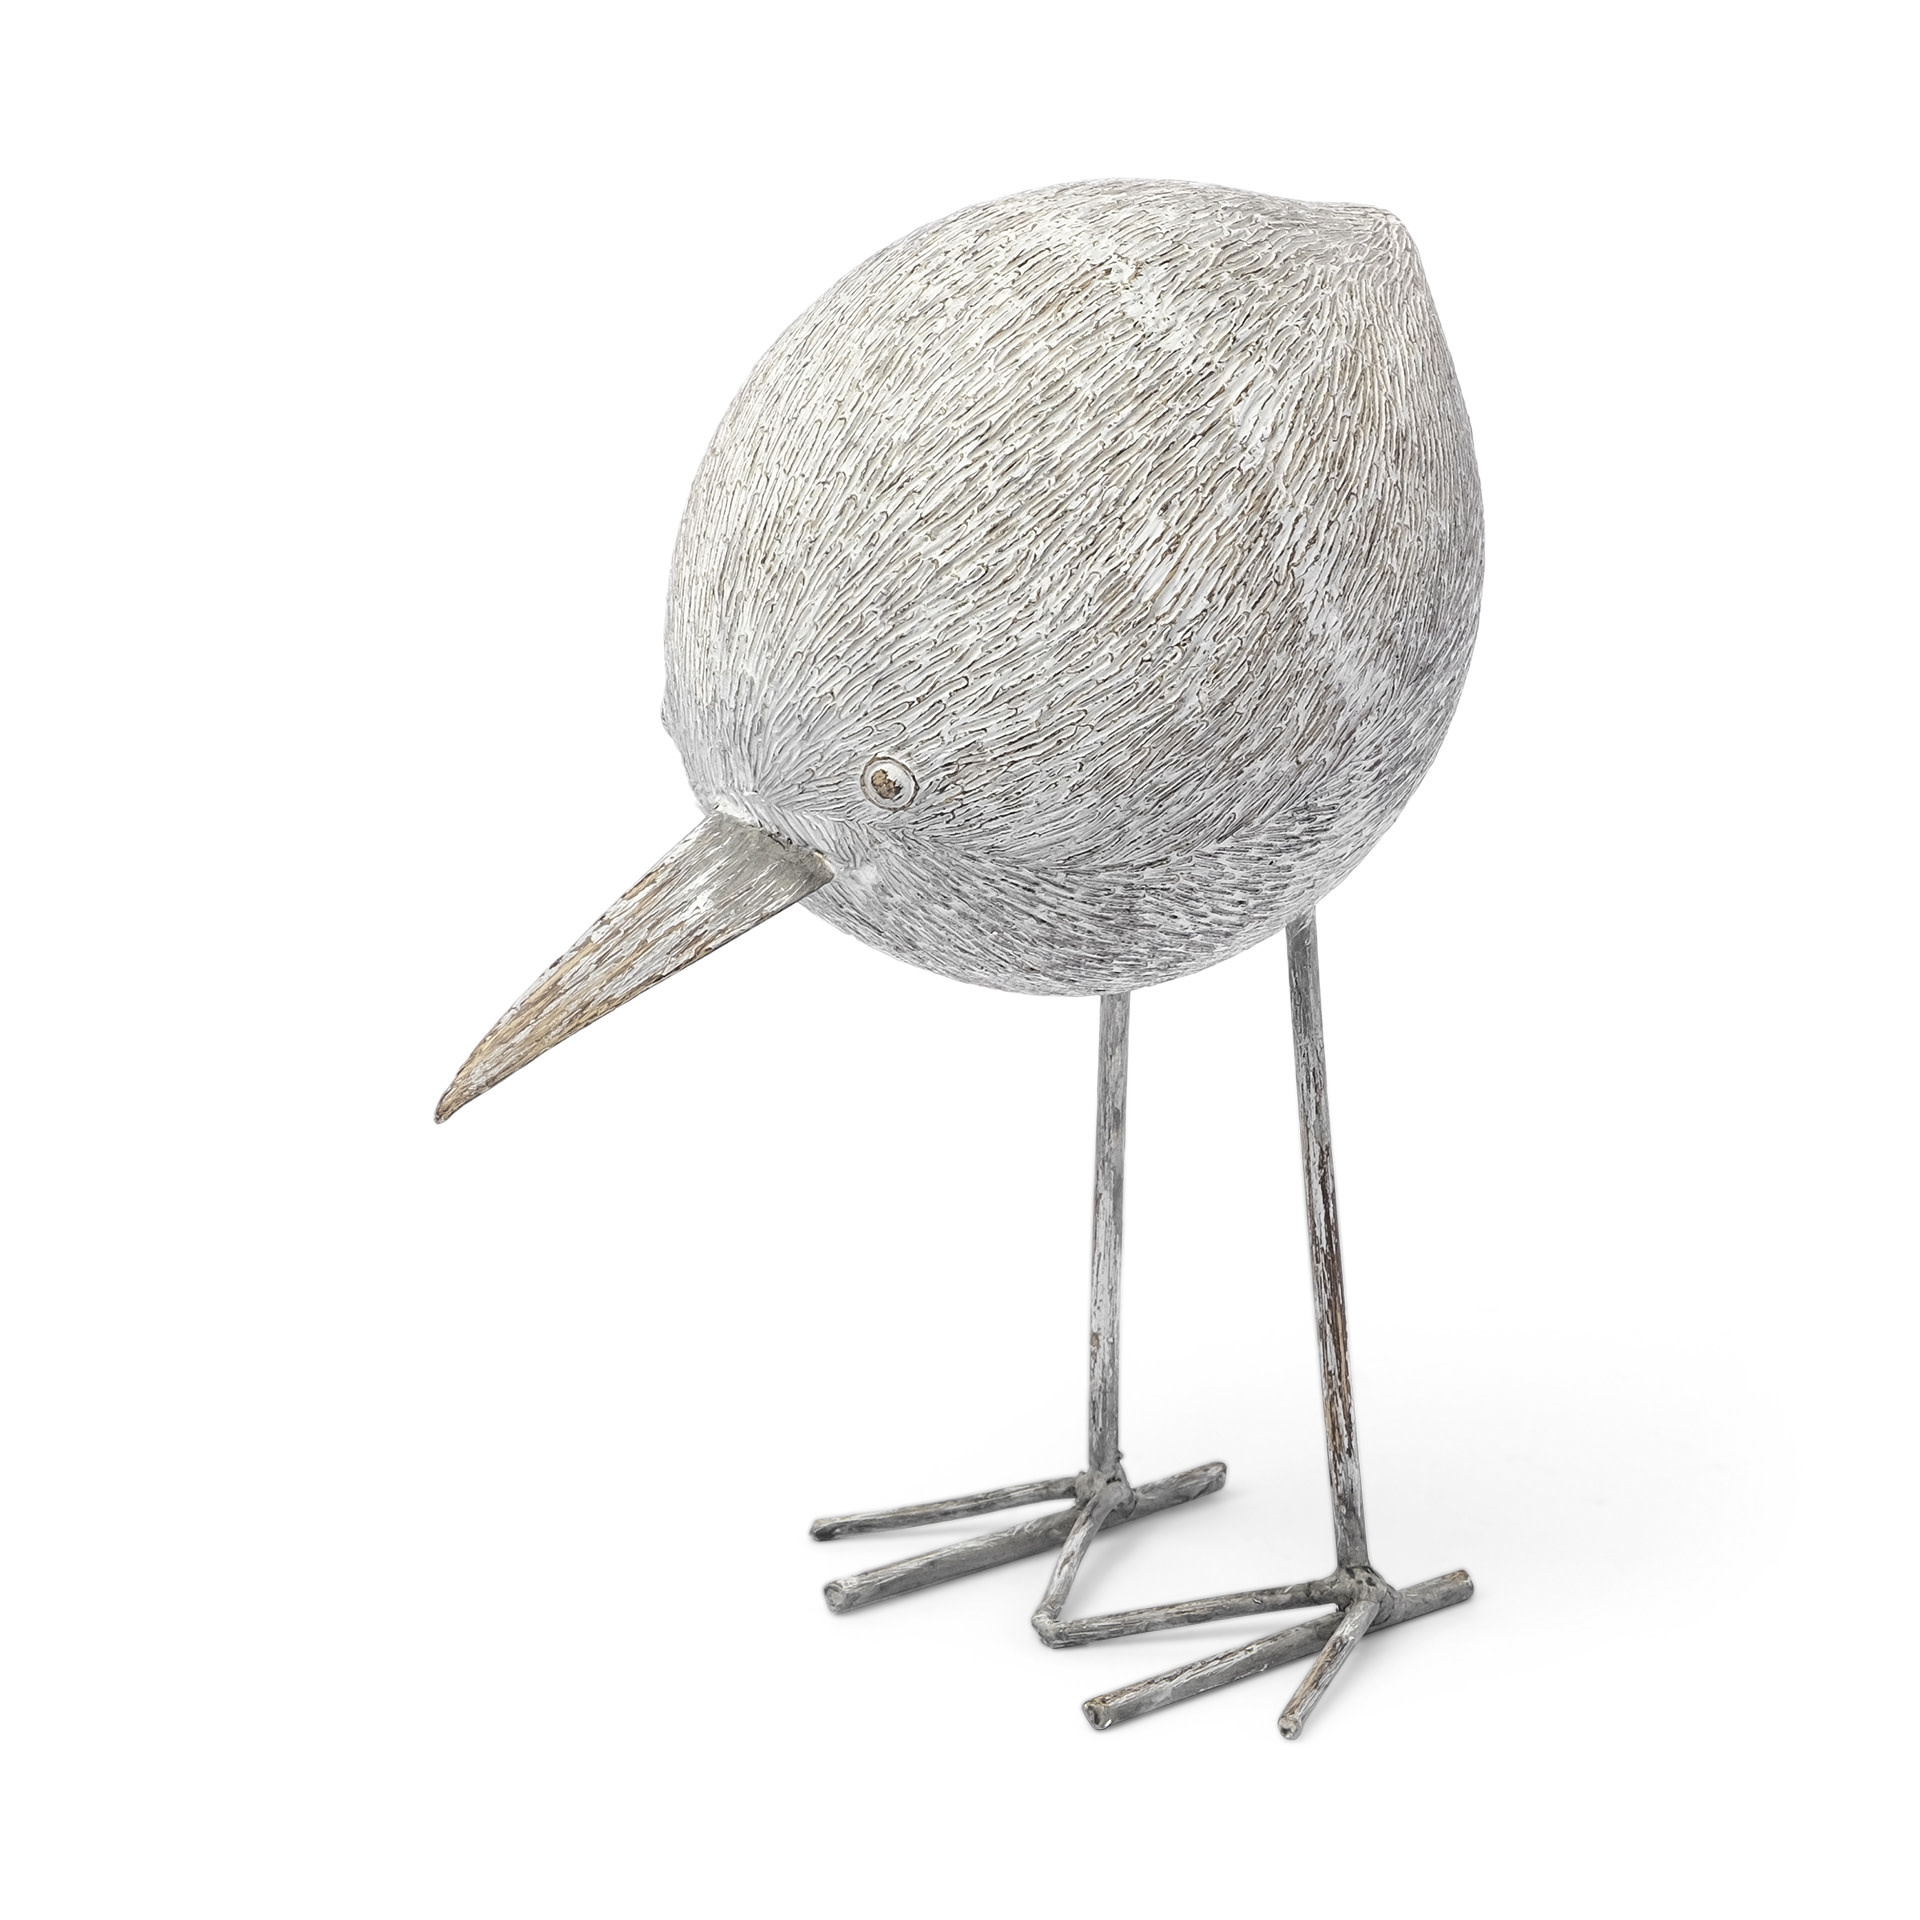 Snipe II Off White Resin Bird Ornament with Metal Feet